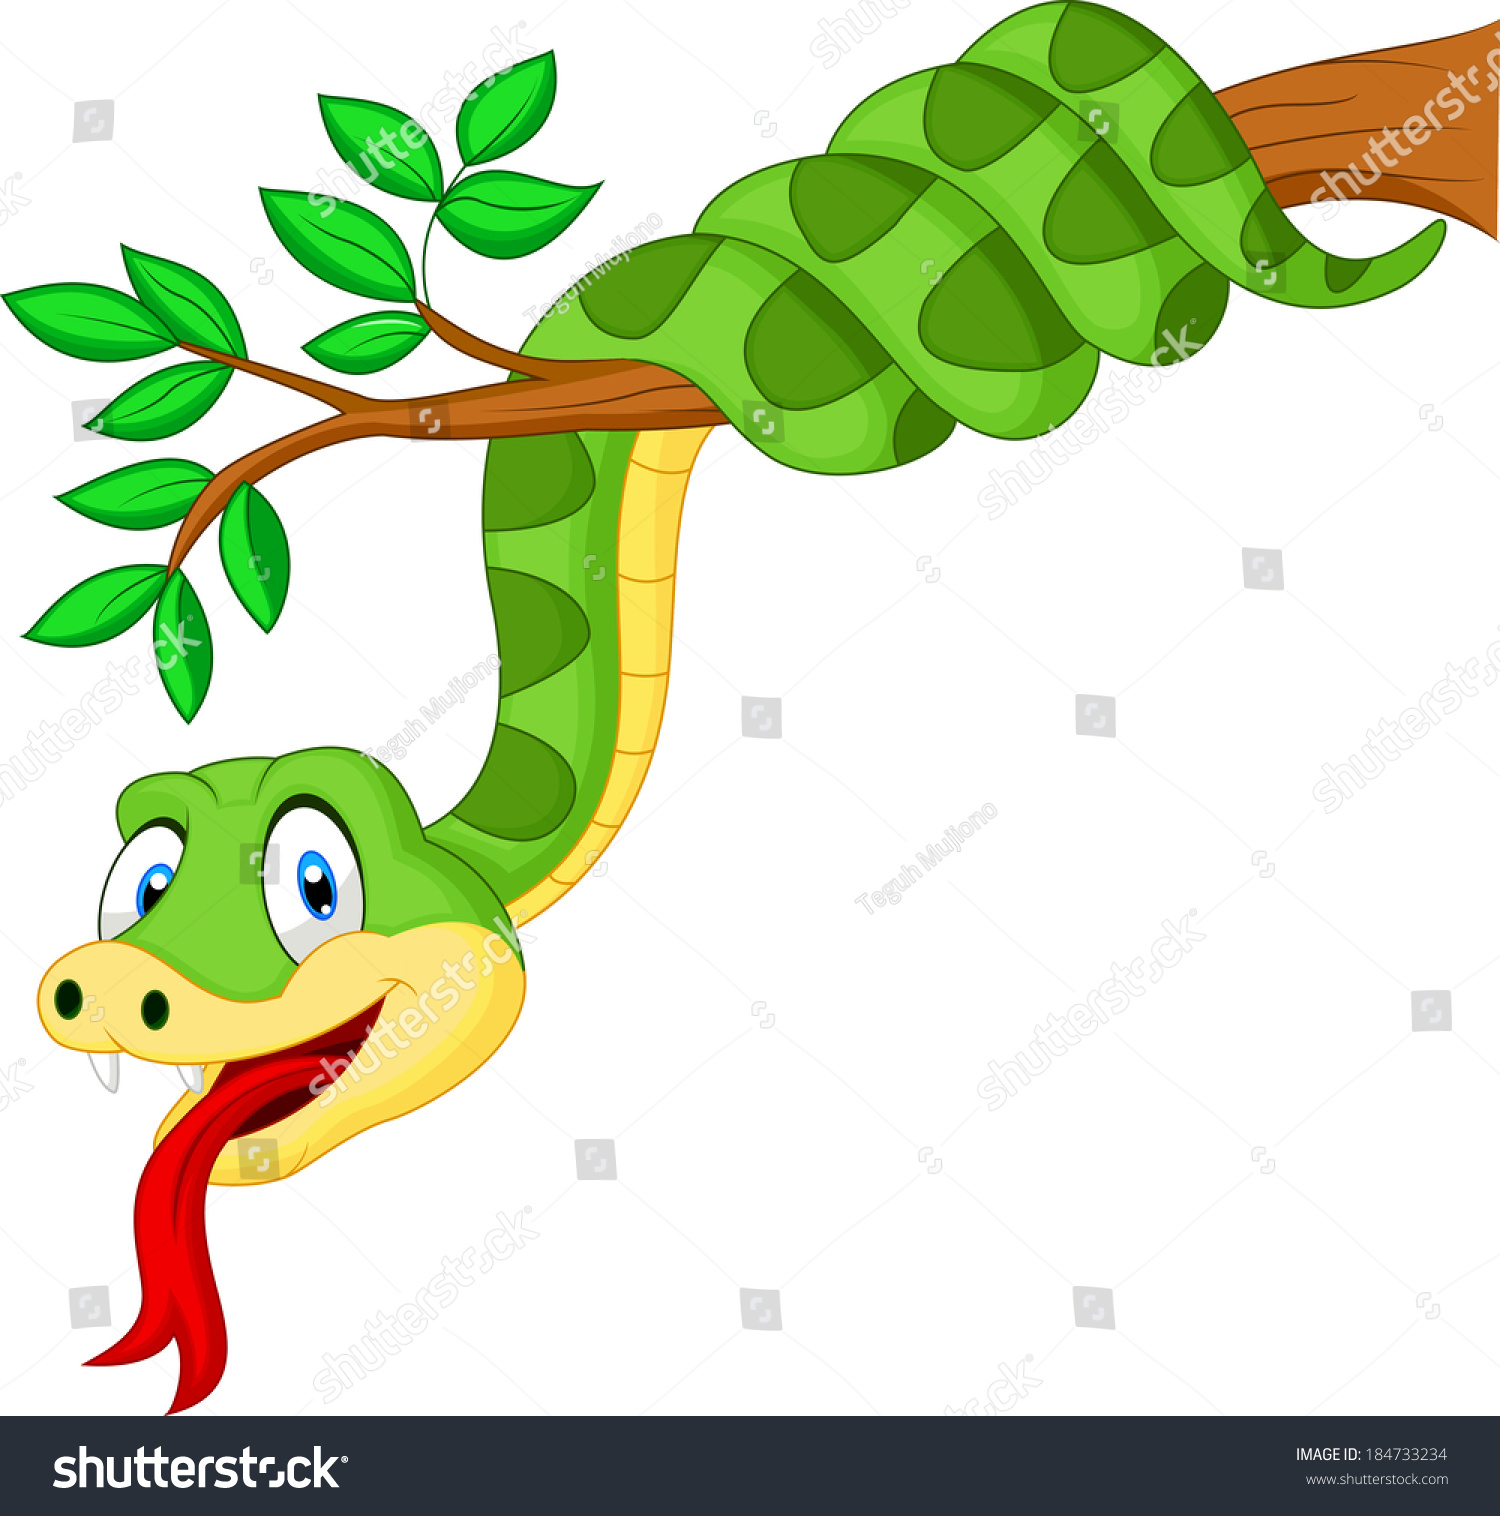 how to draw a snake on a tree